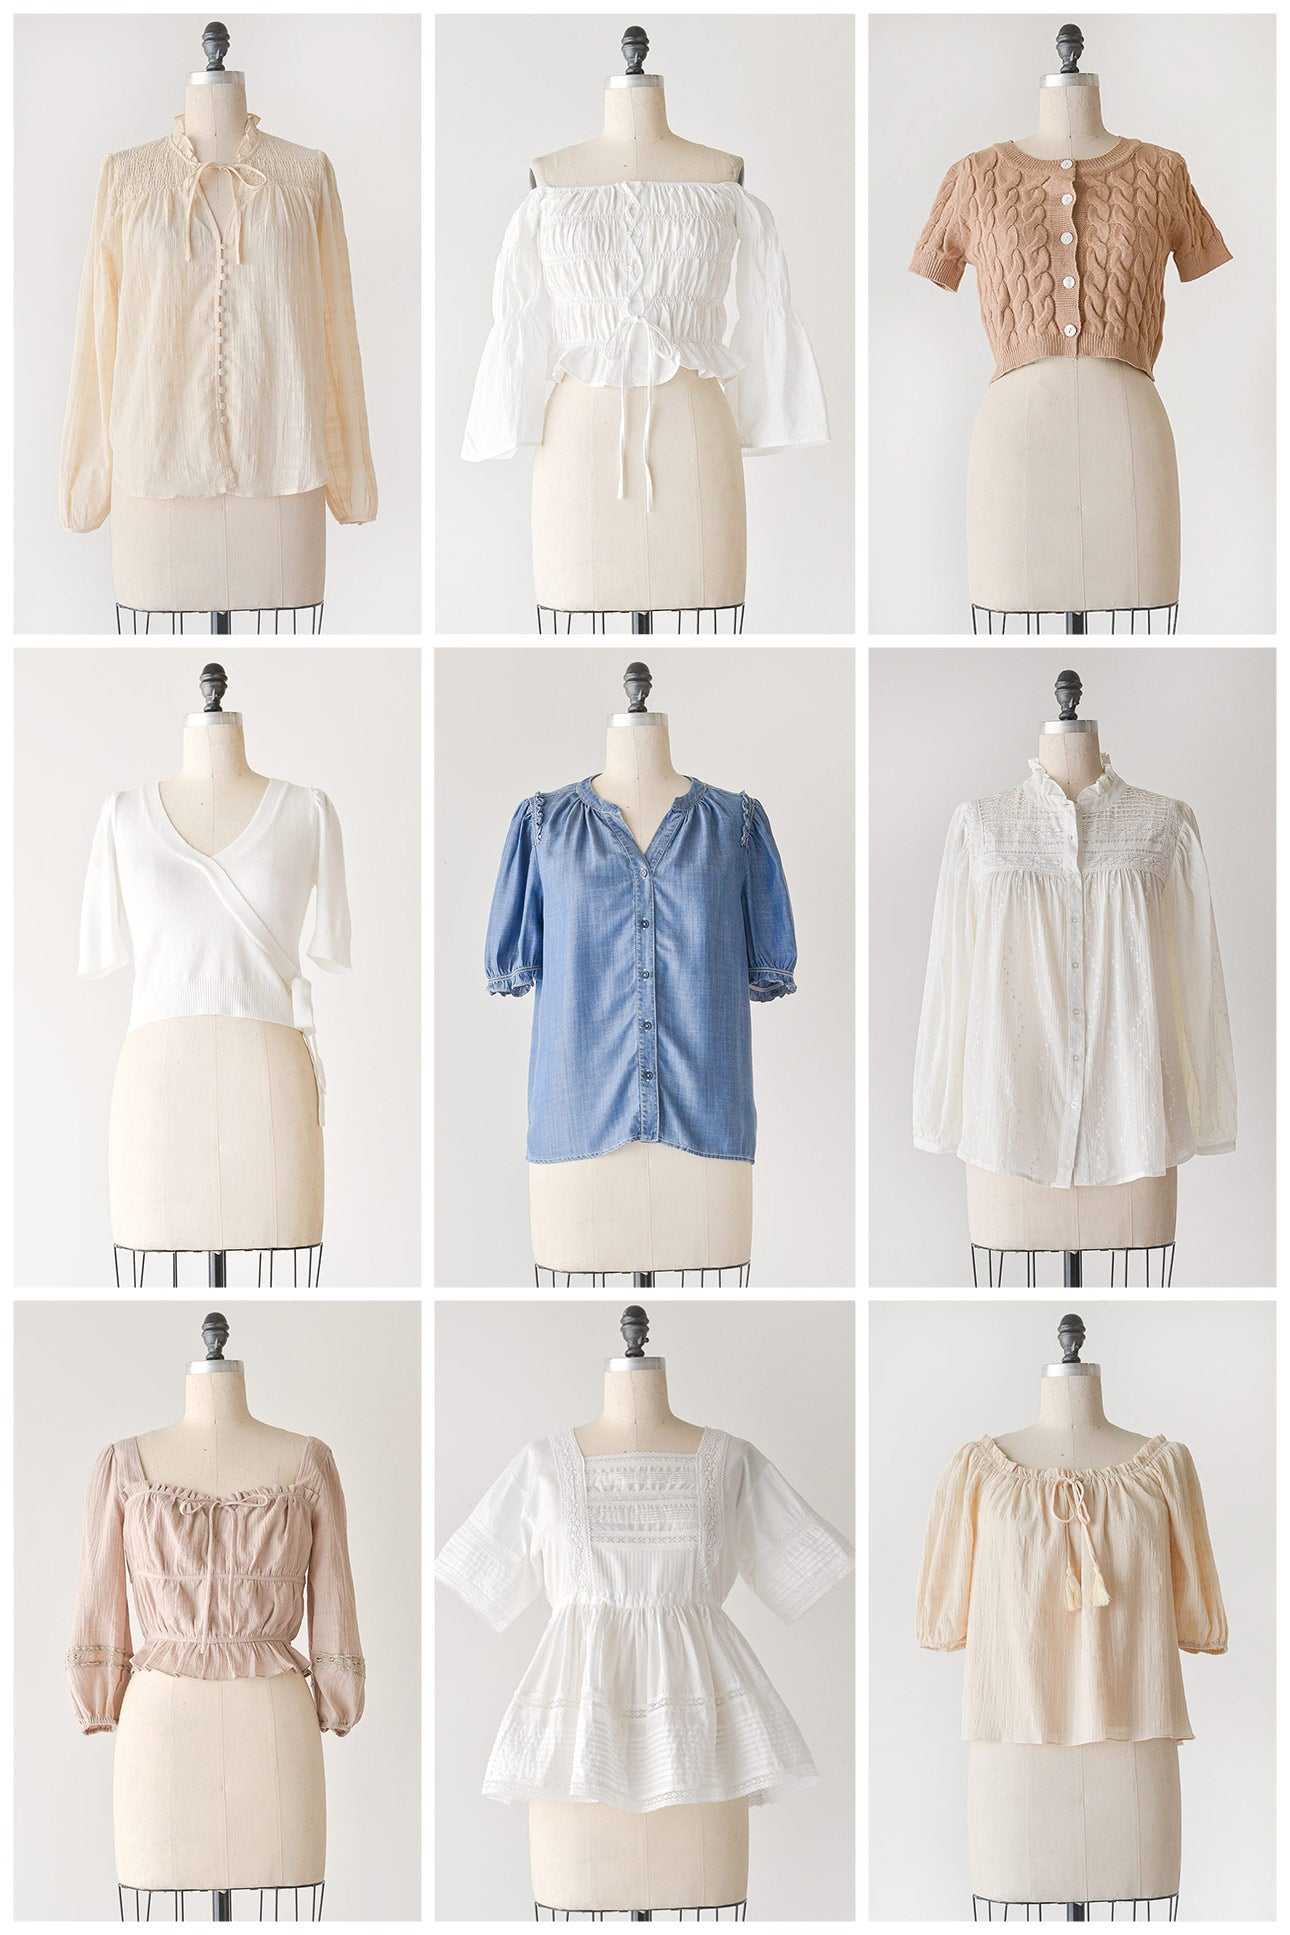 feminine vintage inspired tops from Adored Vintage